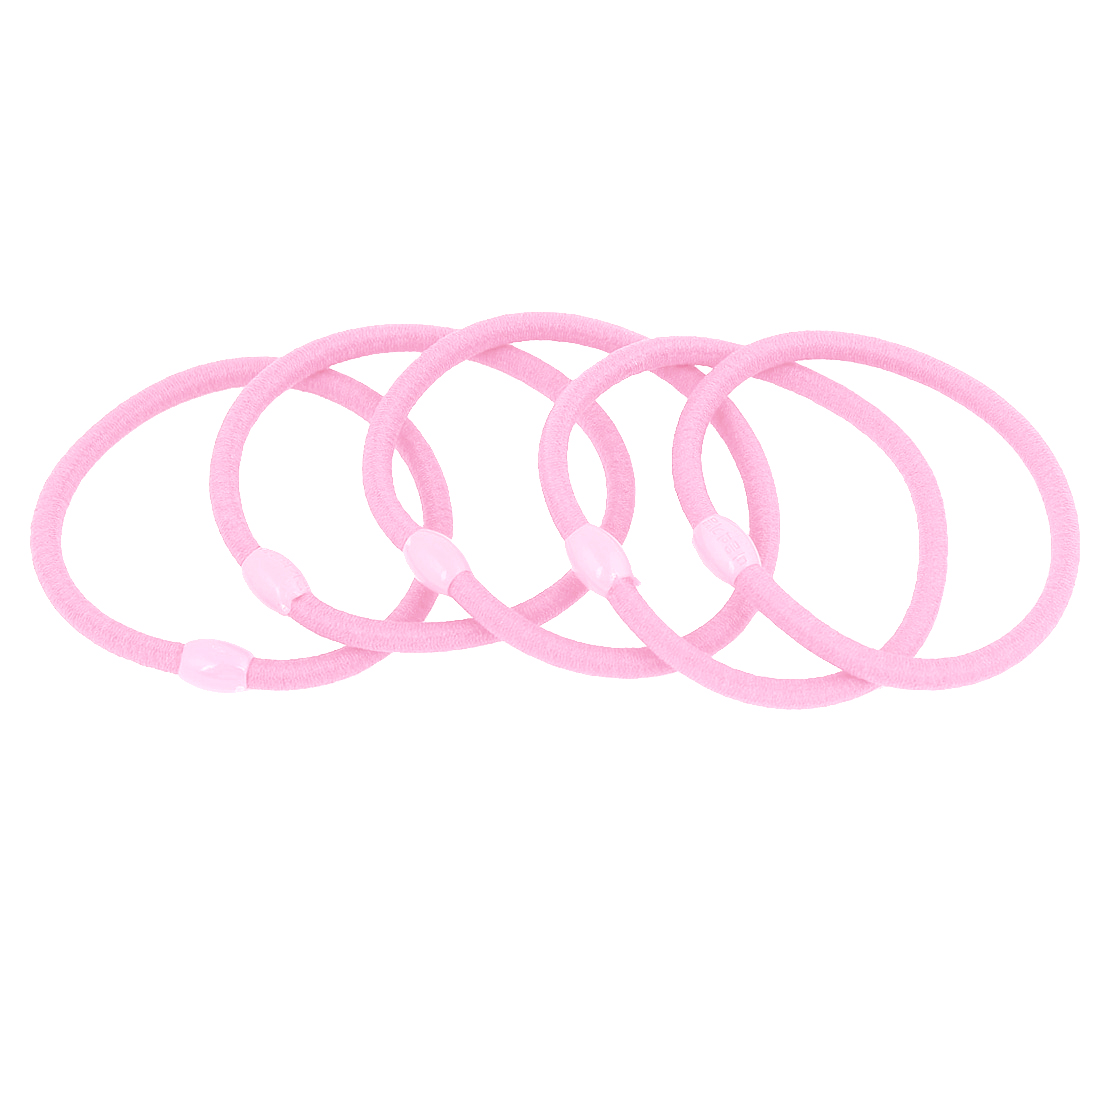 5 Pcs Pink Oval Beads Ponytail Holders Stretchy Hair Tie